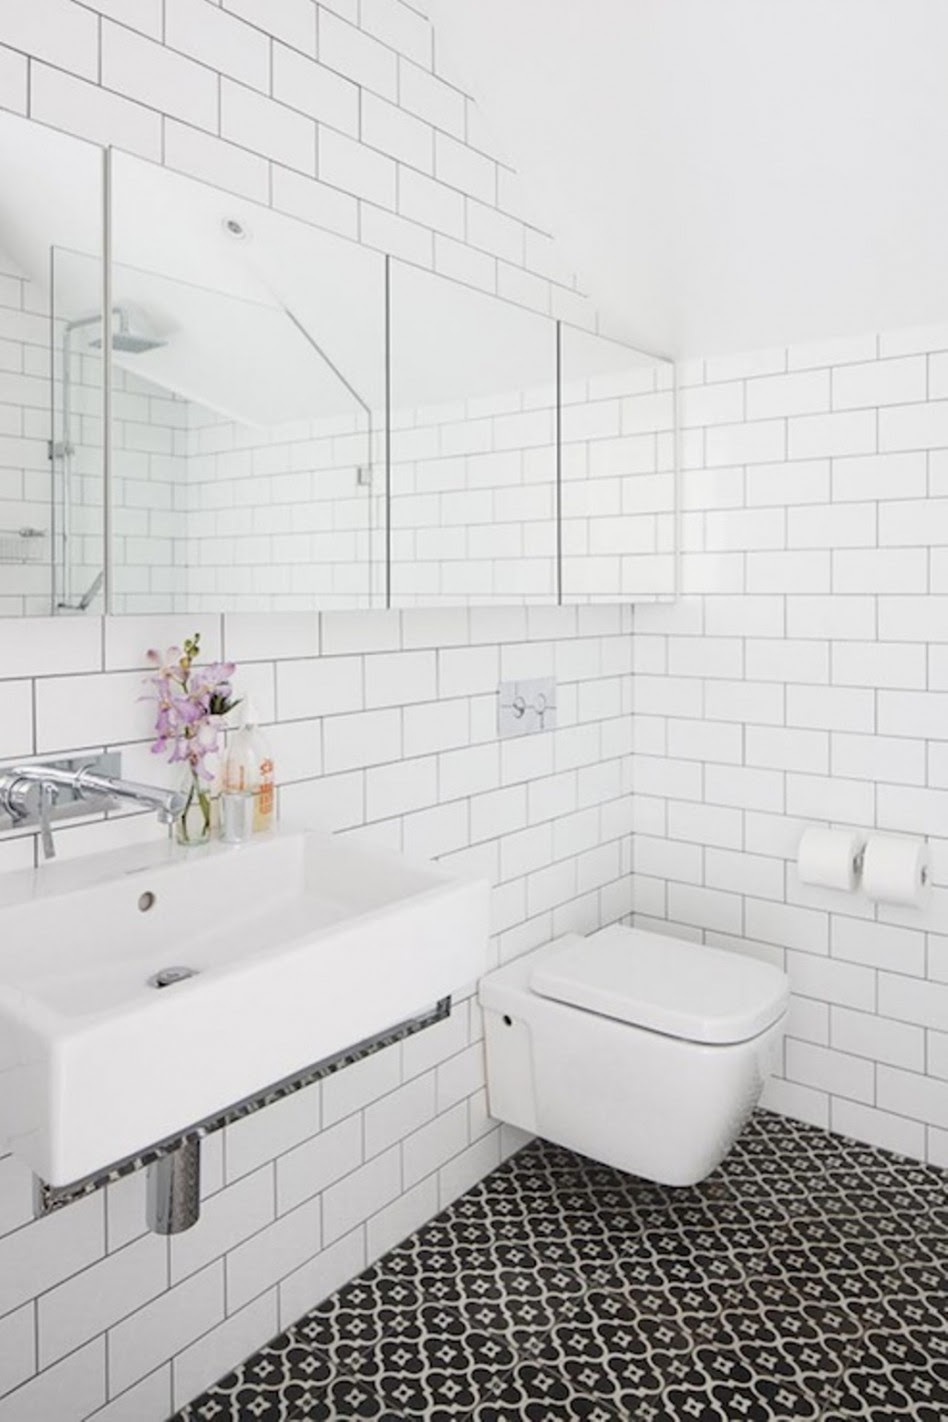 pure white subway tile for bathroom walls huge wide frameless mirror luxurious white sink double stainless steel faucets artistic glass vase beautiful flowers range white modern toilet